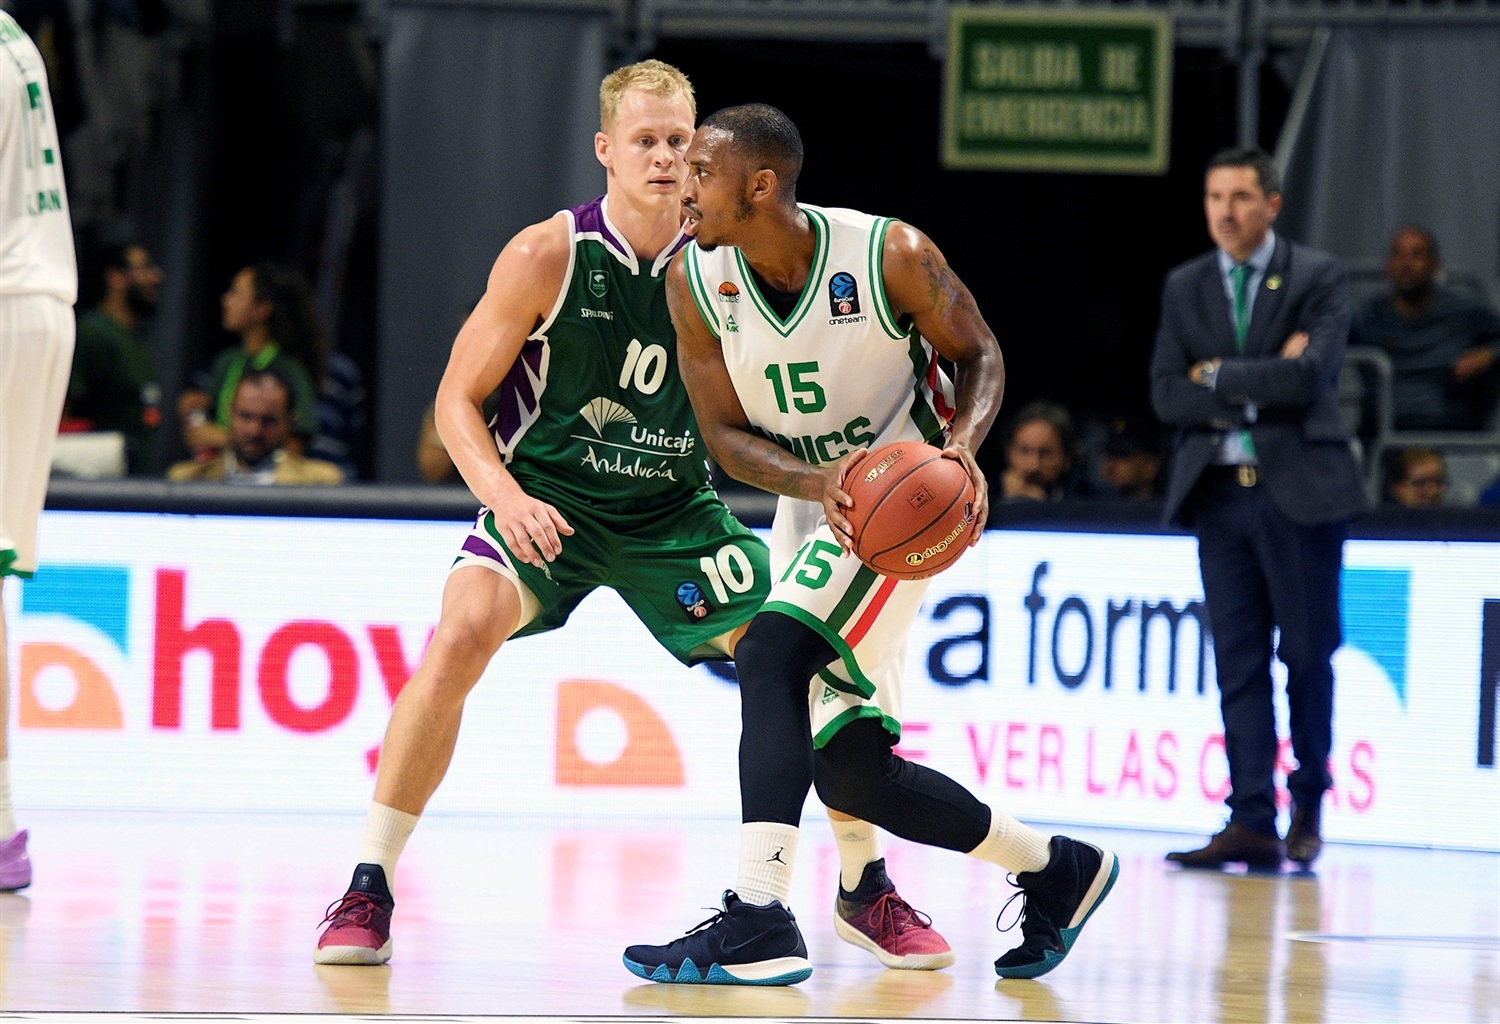 Jamar Smith - UNICS Kazan (photo Unicaja - Mariano Pozo) - EC18